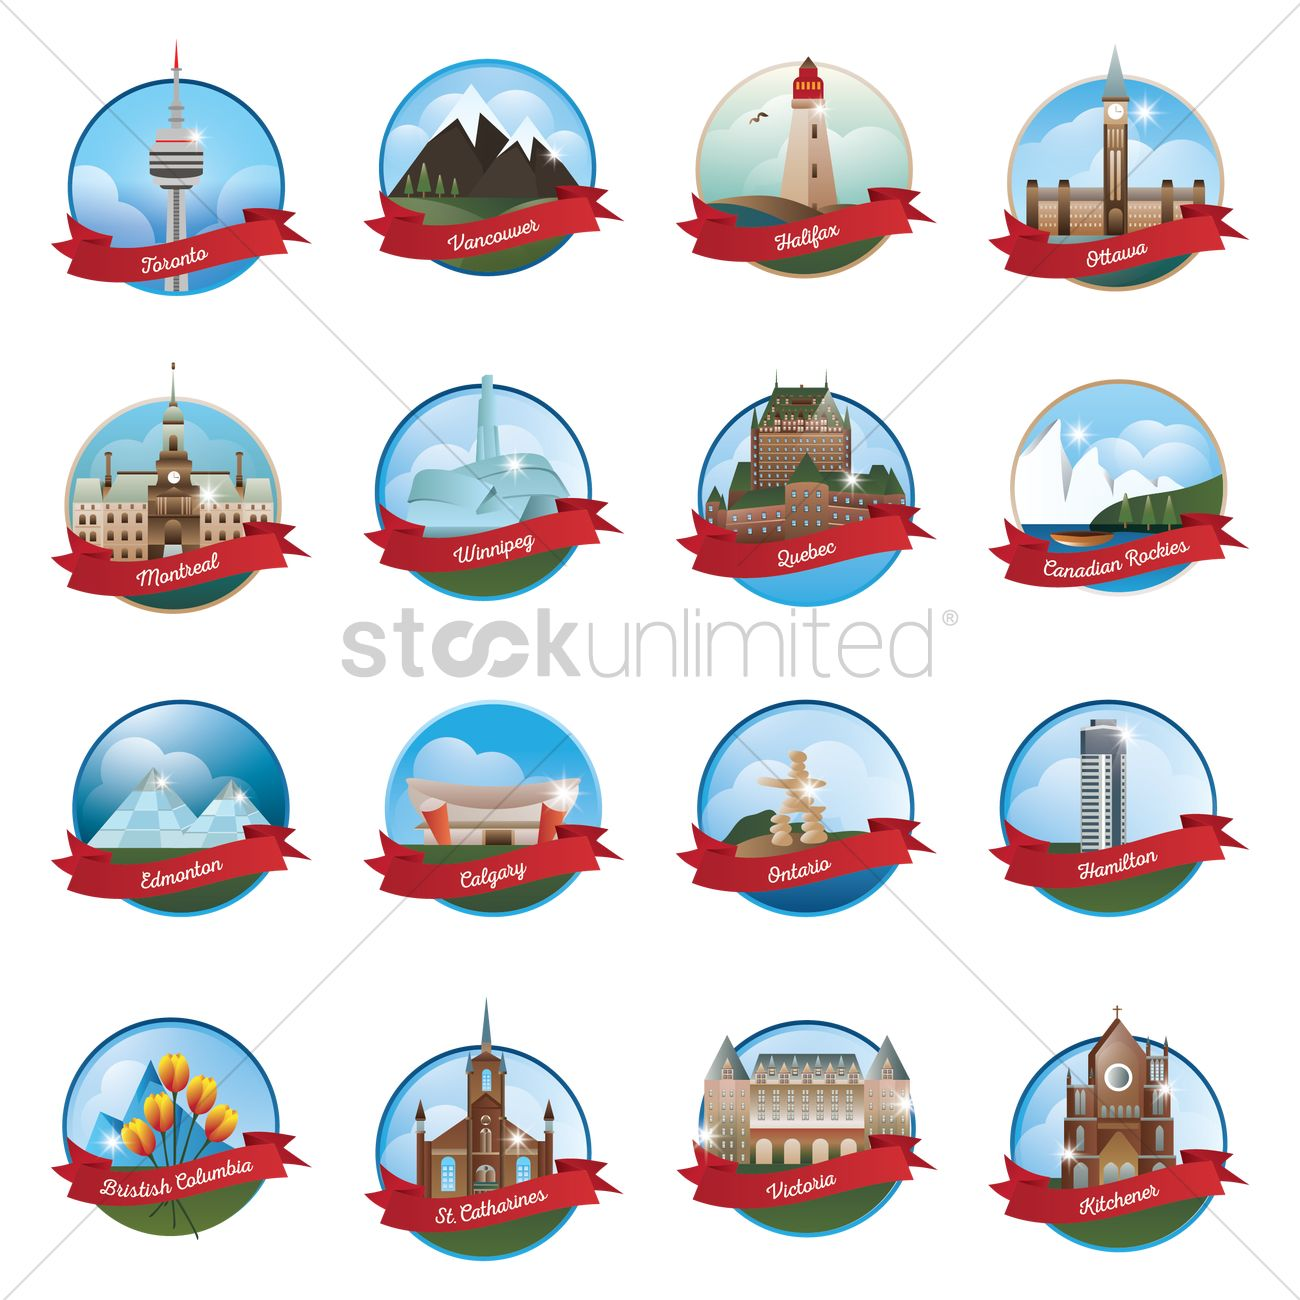 Canadian Rockies clipart #8, Download drawings